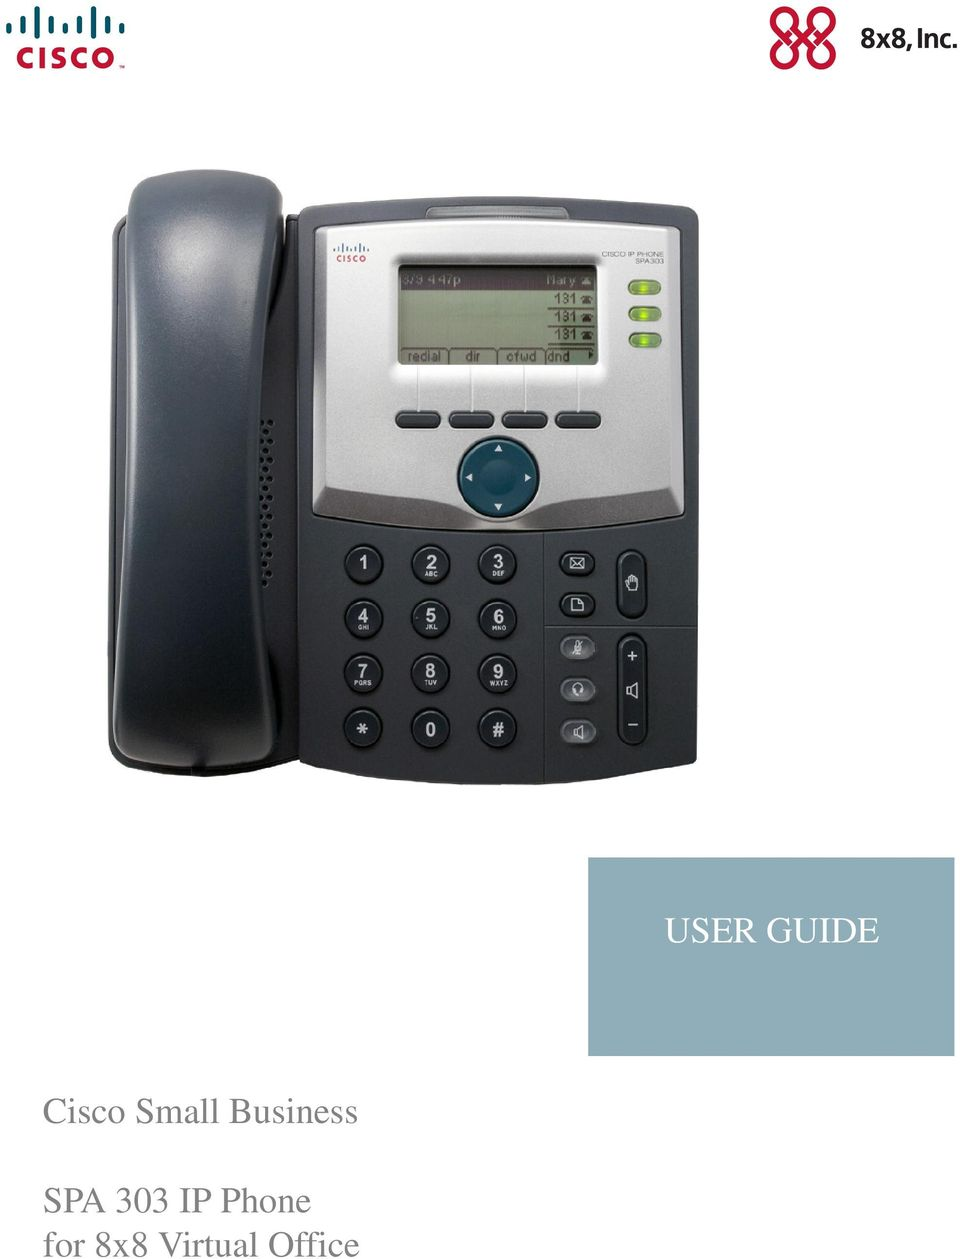 SPA 303 IP Phone